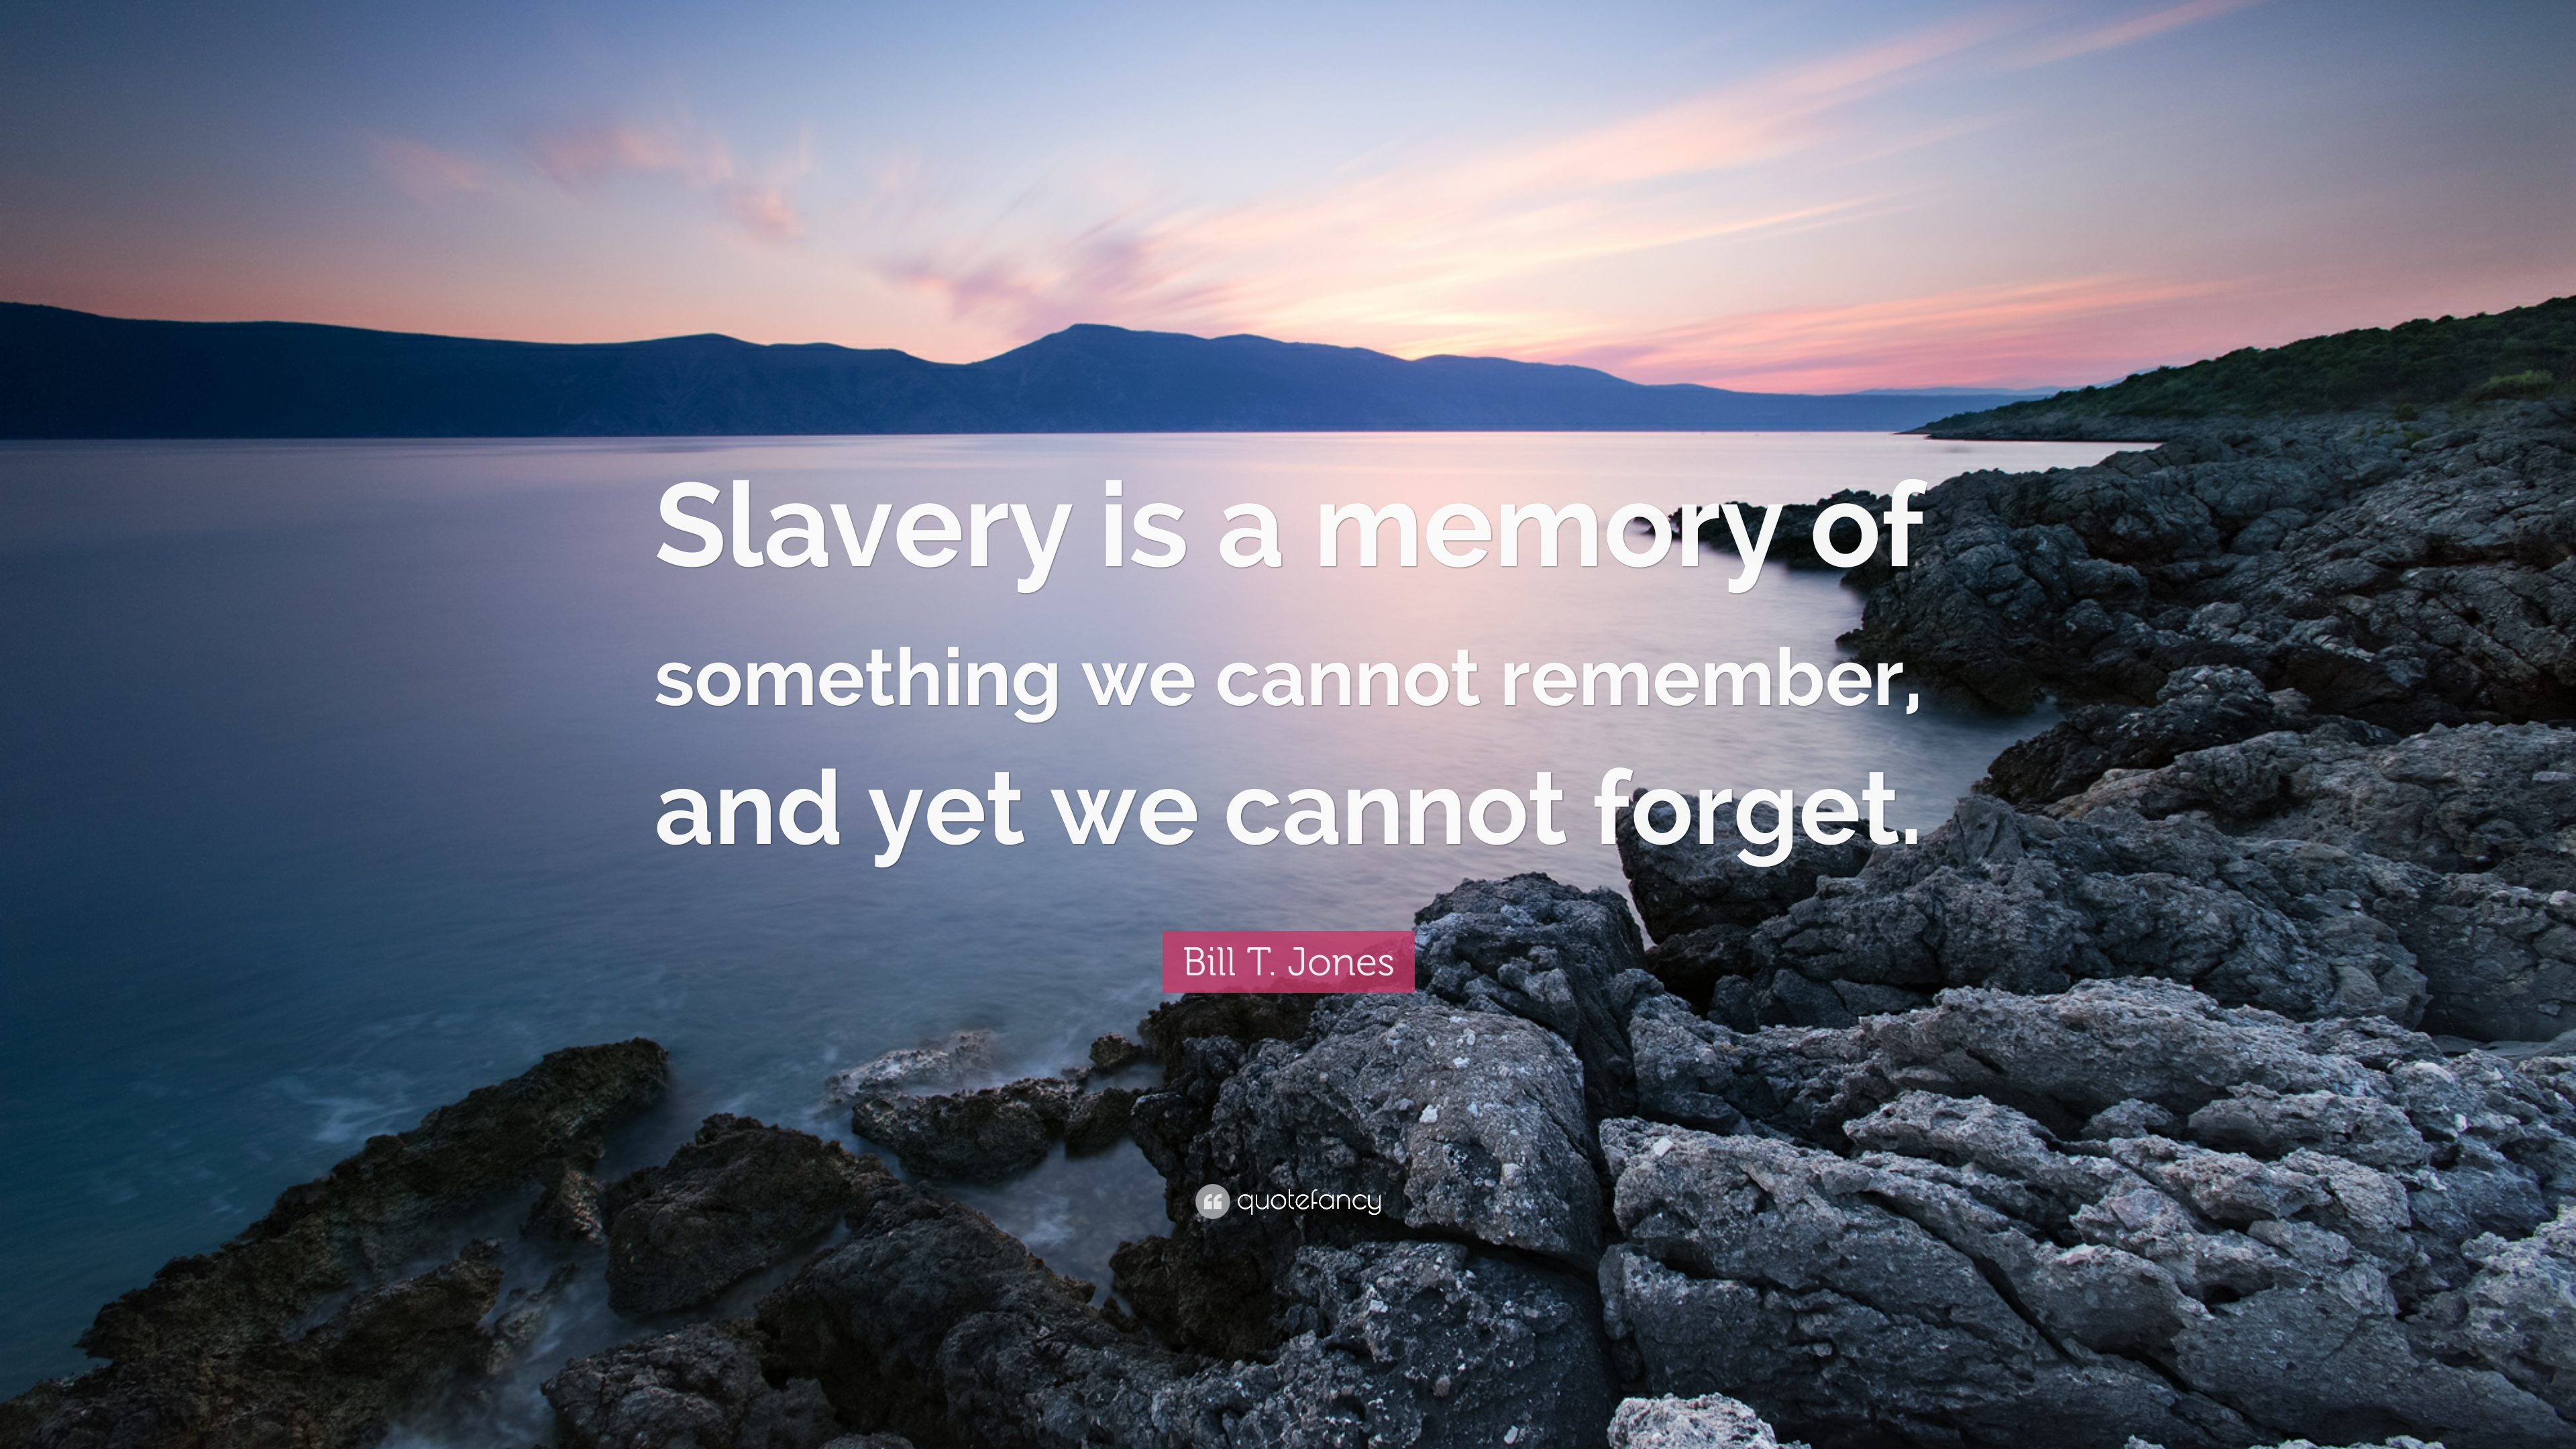 Bill T. Jones Quote: U201cSlavery Is A Memory Of Something We Cannot Remember